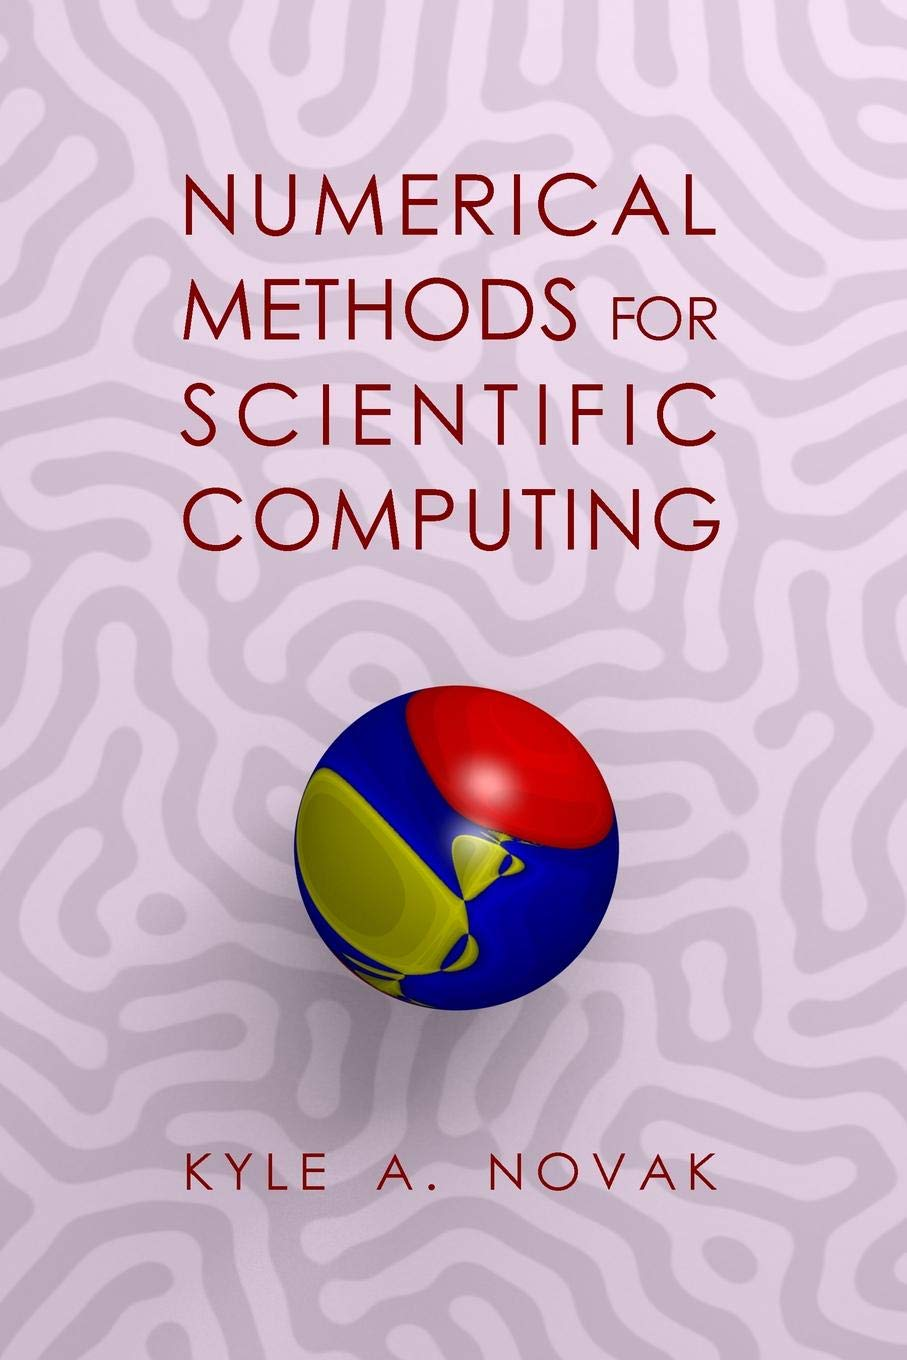 Numerical Methods for Scientific Computing: Kyle Novak: 9781365659911:  Amazon.com: Books